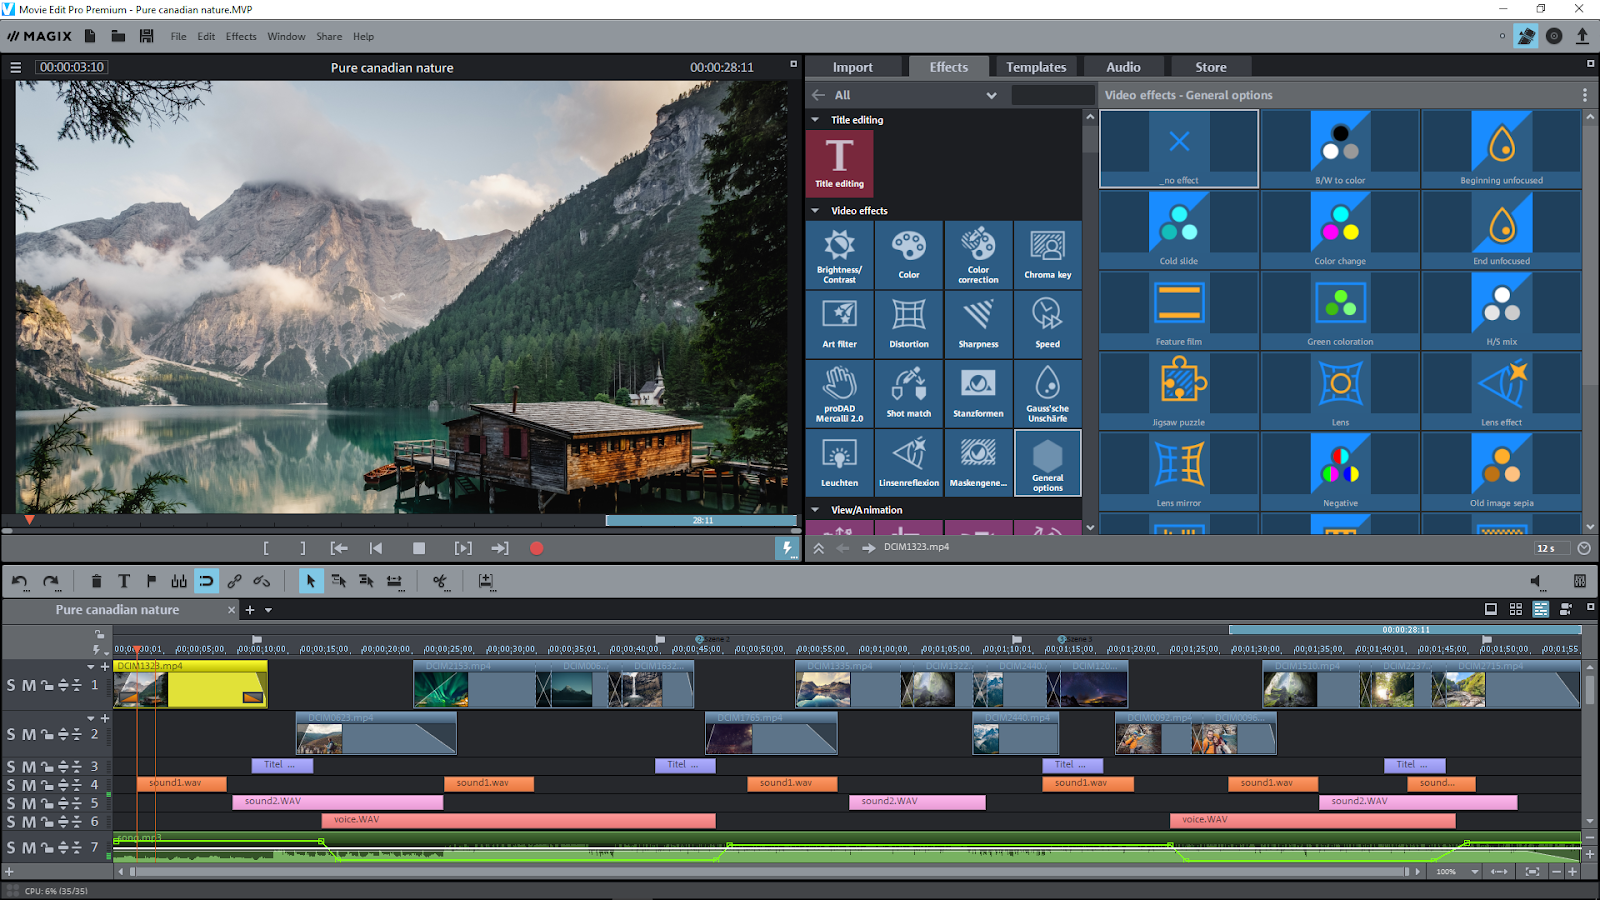 magix movie edit pro 2016 plus crack